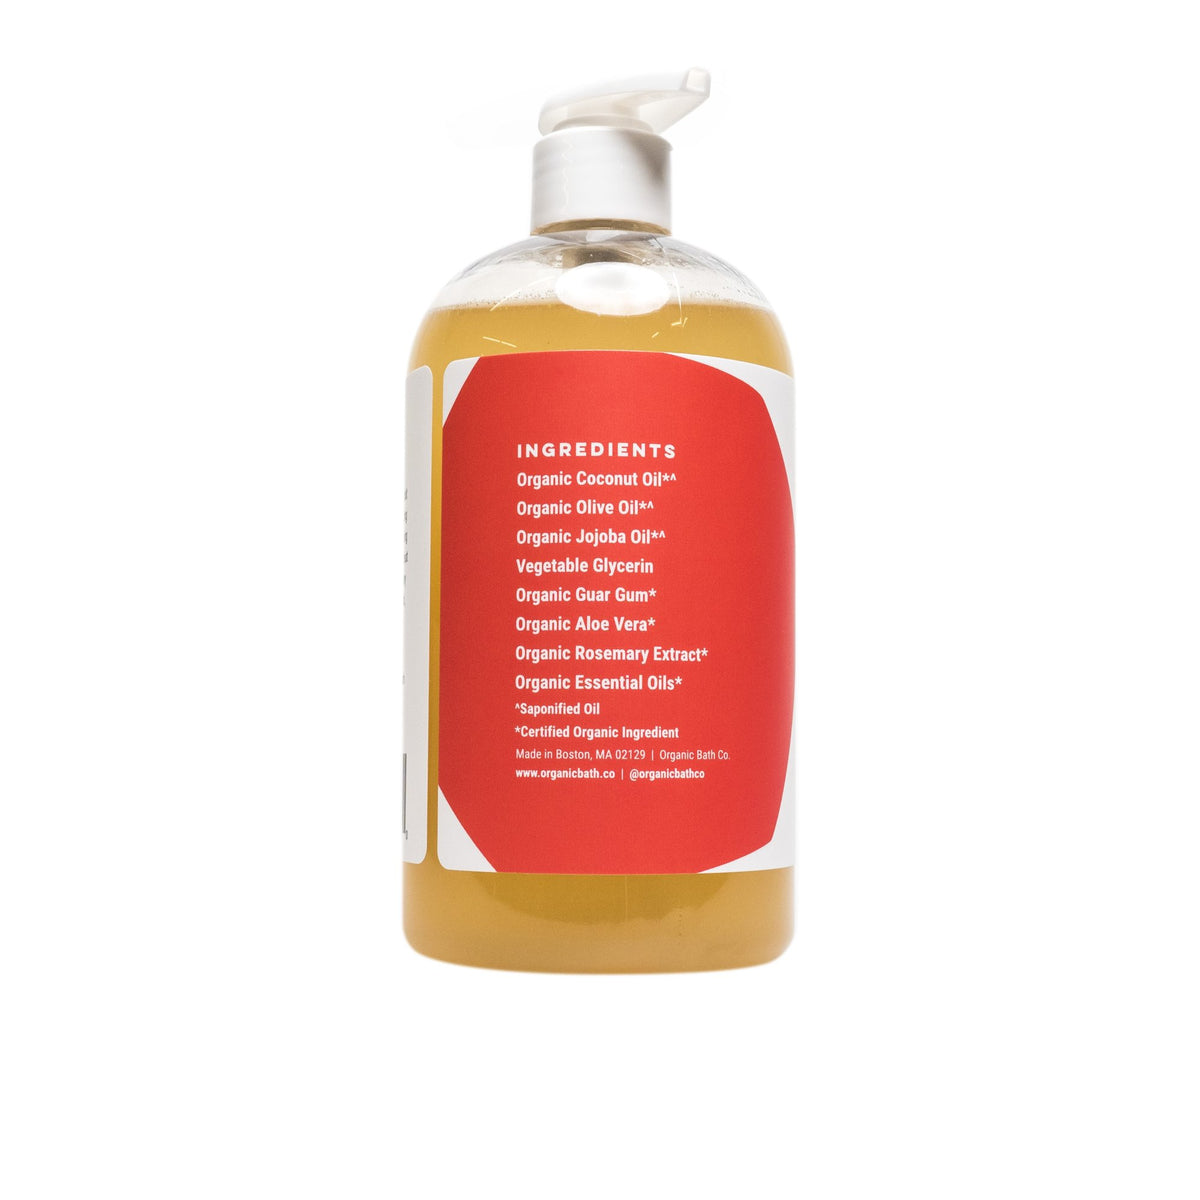 Organic Bath Co Zesty Morning Body Wash - AILLEA